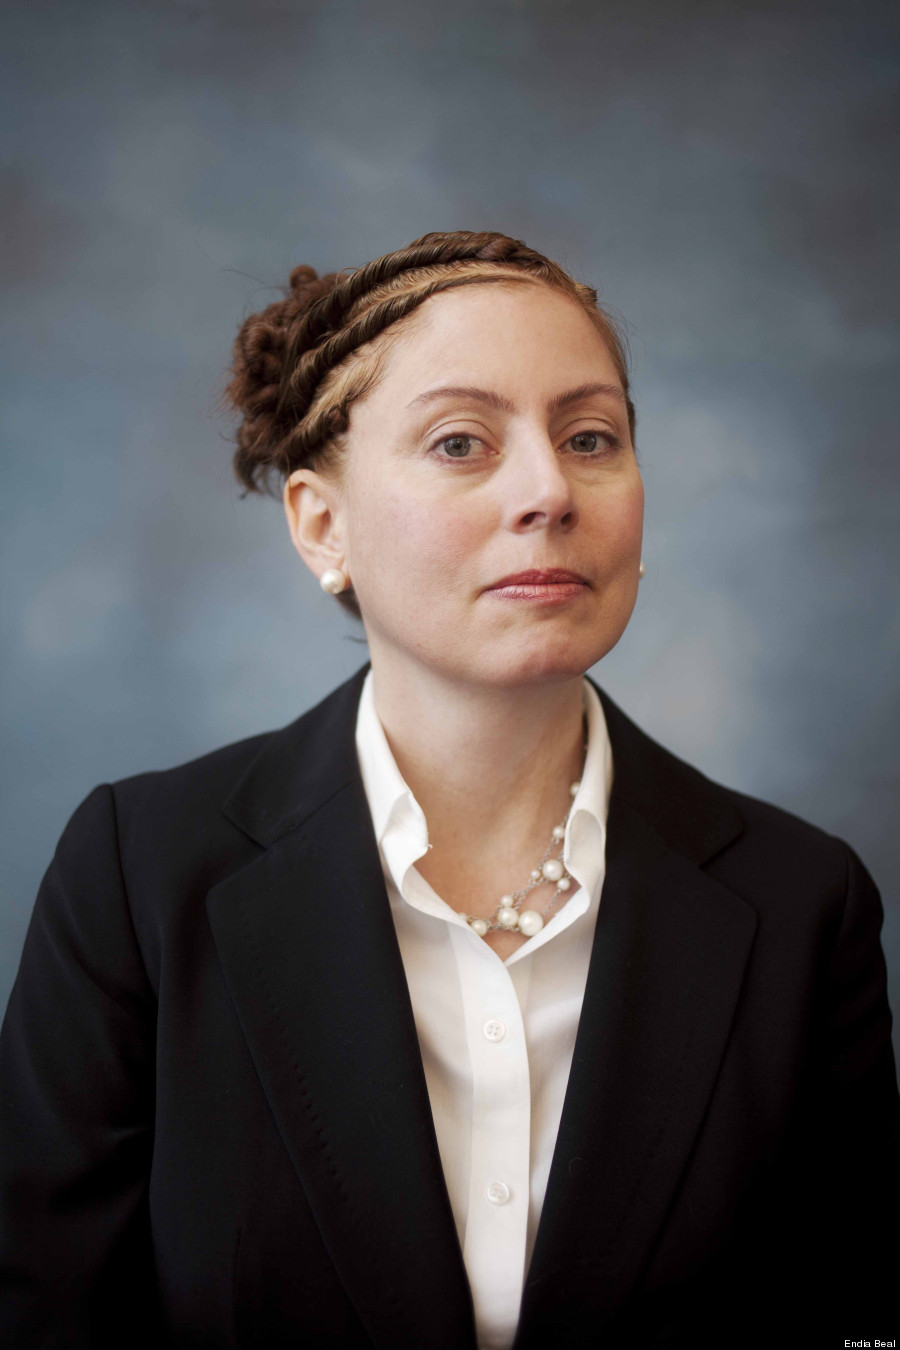 Outstanding White Women With Black Hairstyles Redefine Corporate America The Hairstyles For Men Maxibearus